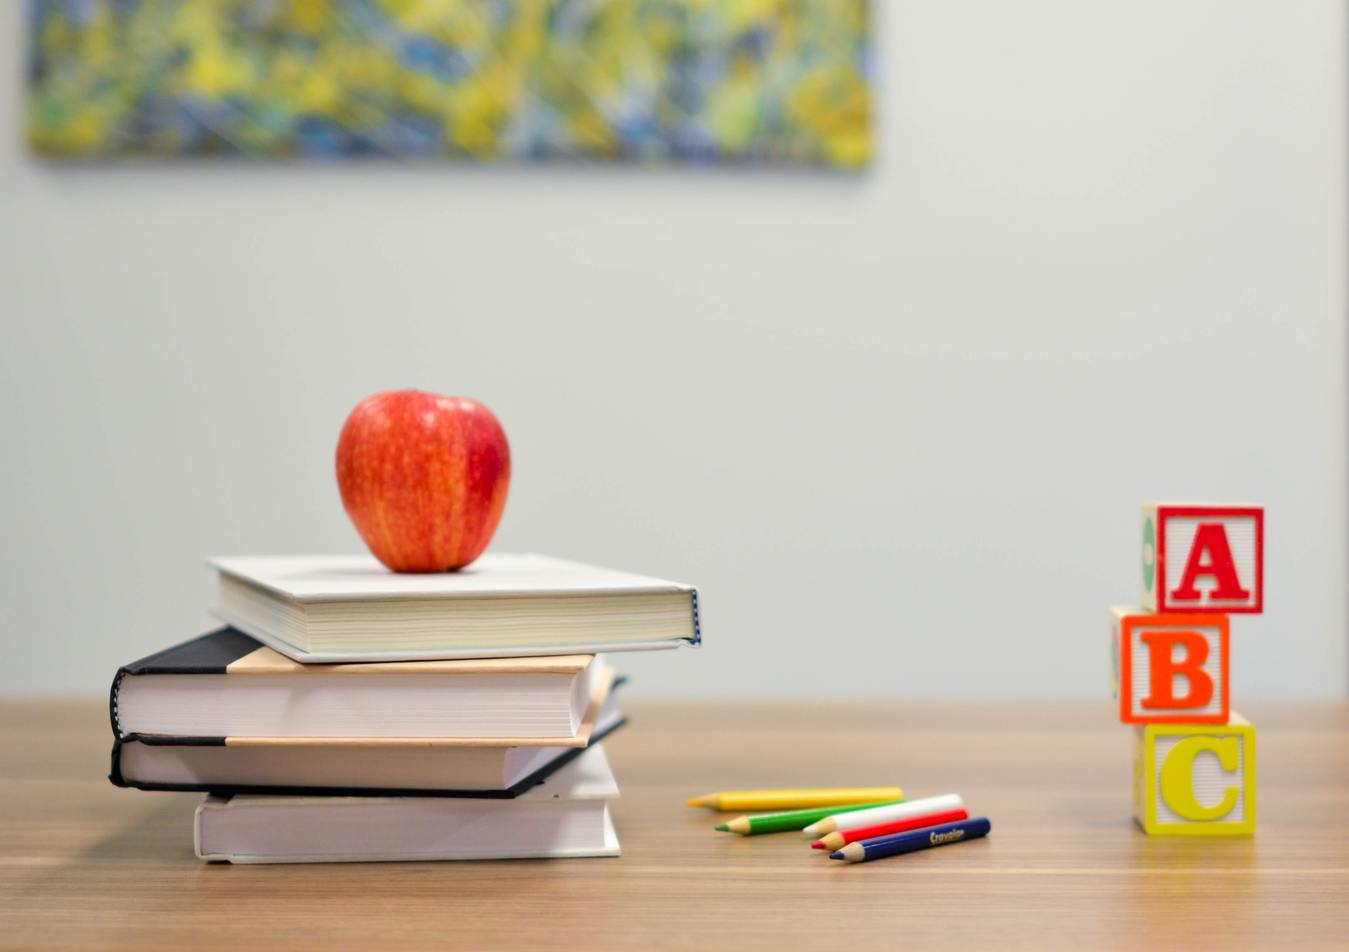 Books, pens, an apple and abc blocks on a table